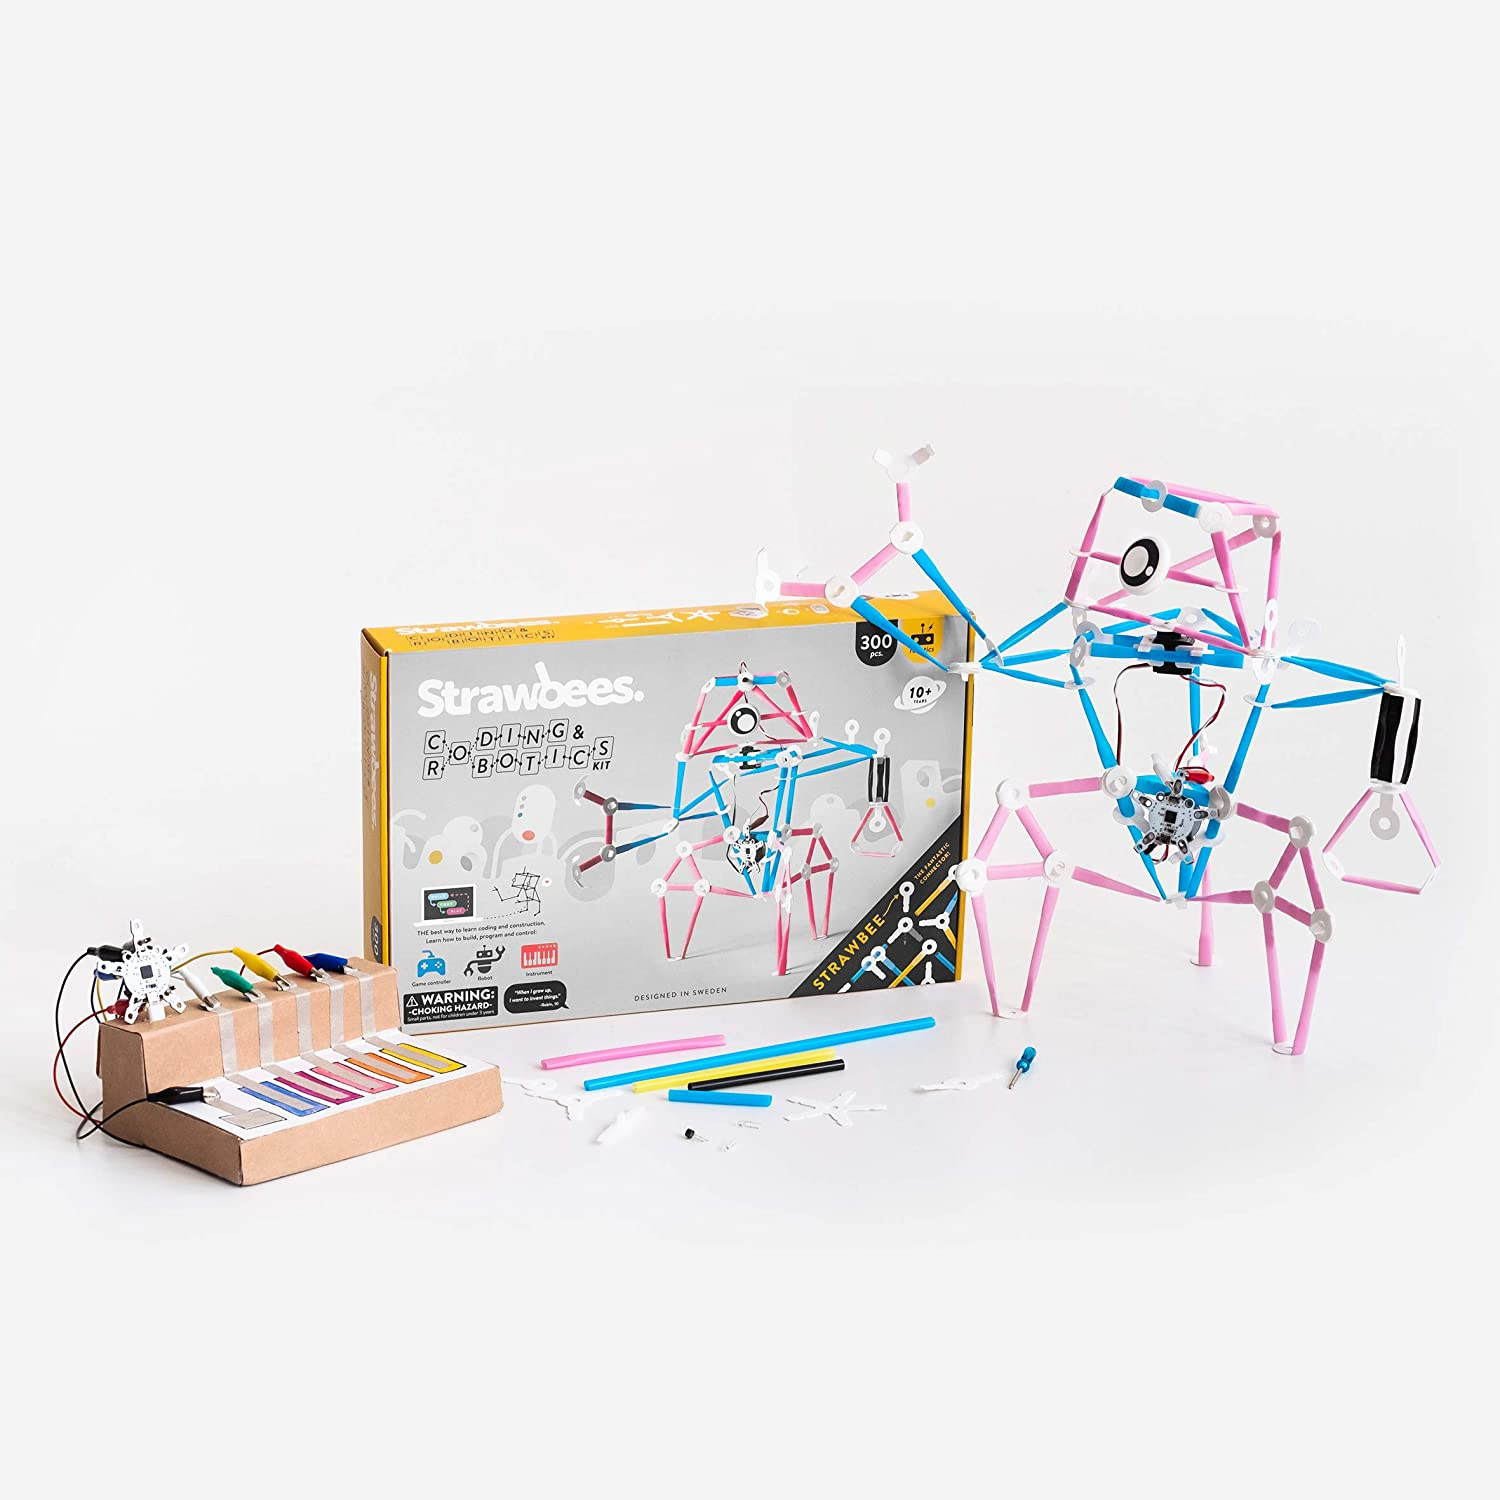 Strawbees Coding & Robotics Kit STEM Building and Programming Set